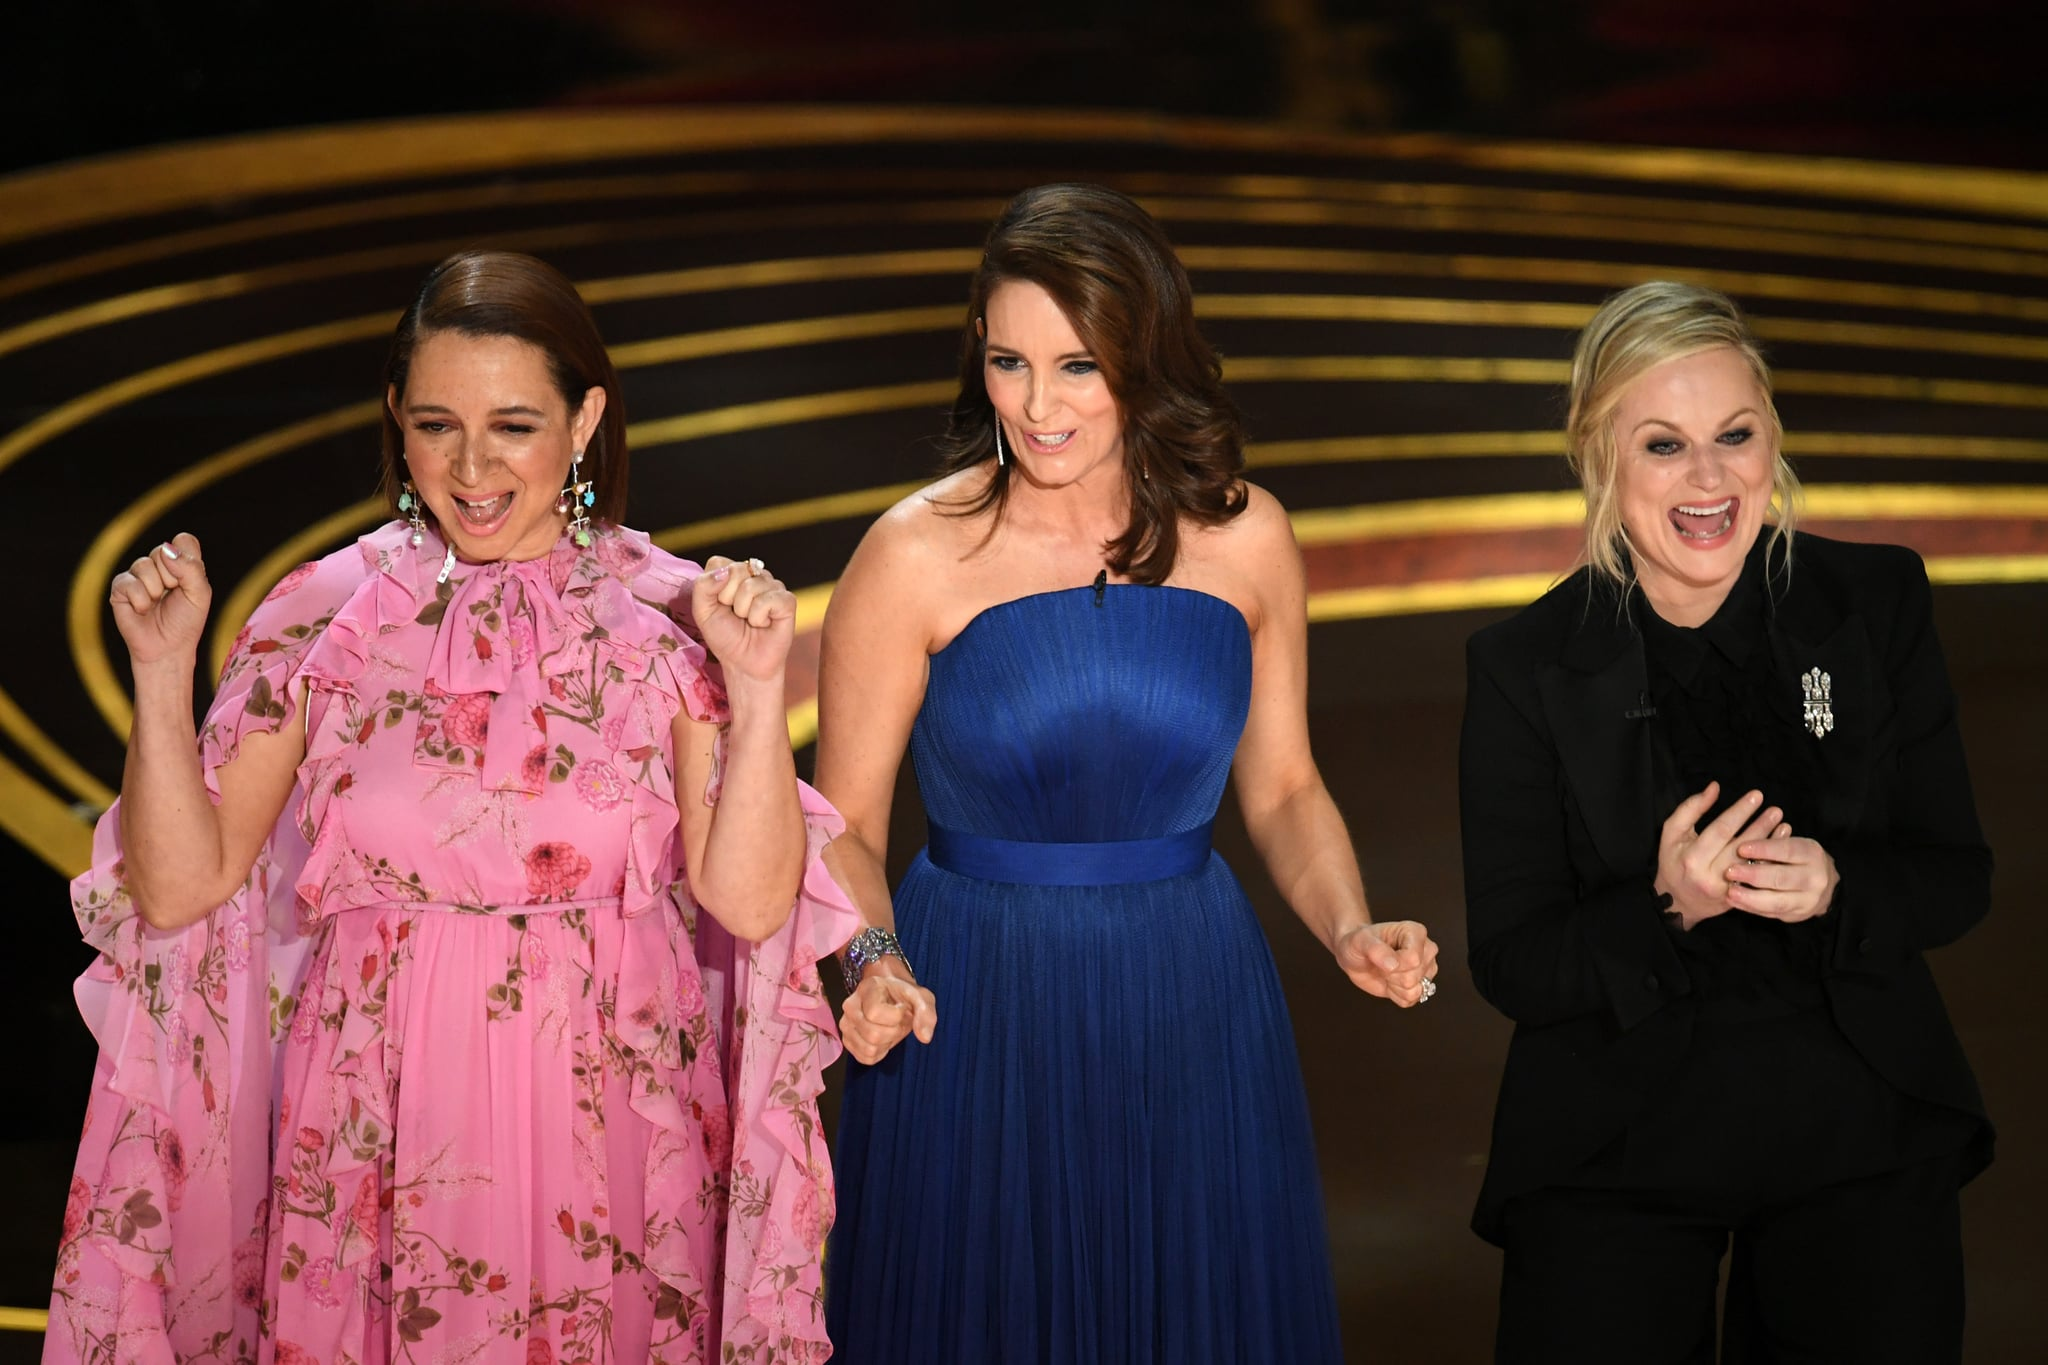 HOLLYWOOD, CALIFORNIA - FEBRUARY 24: (L-R) Maya Rudolph, Tina Fey, and Amy Poehler speak onstage during the 91st Annual Academy Awards at Dolby Theatre on February 24, 2019 in Hollywood, California. (Photo by Kevin Winter/Getty Images)